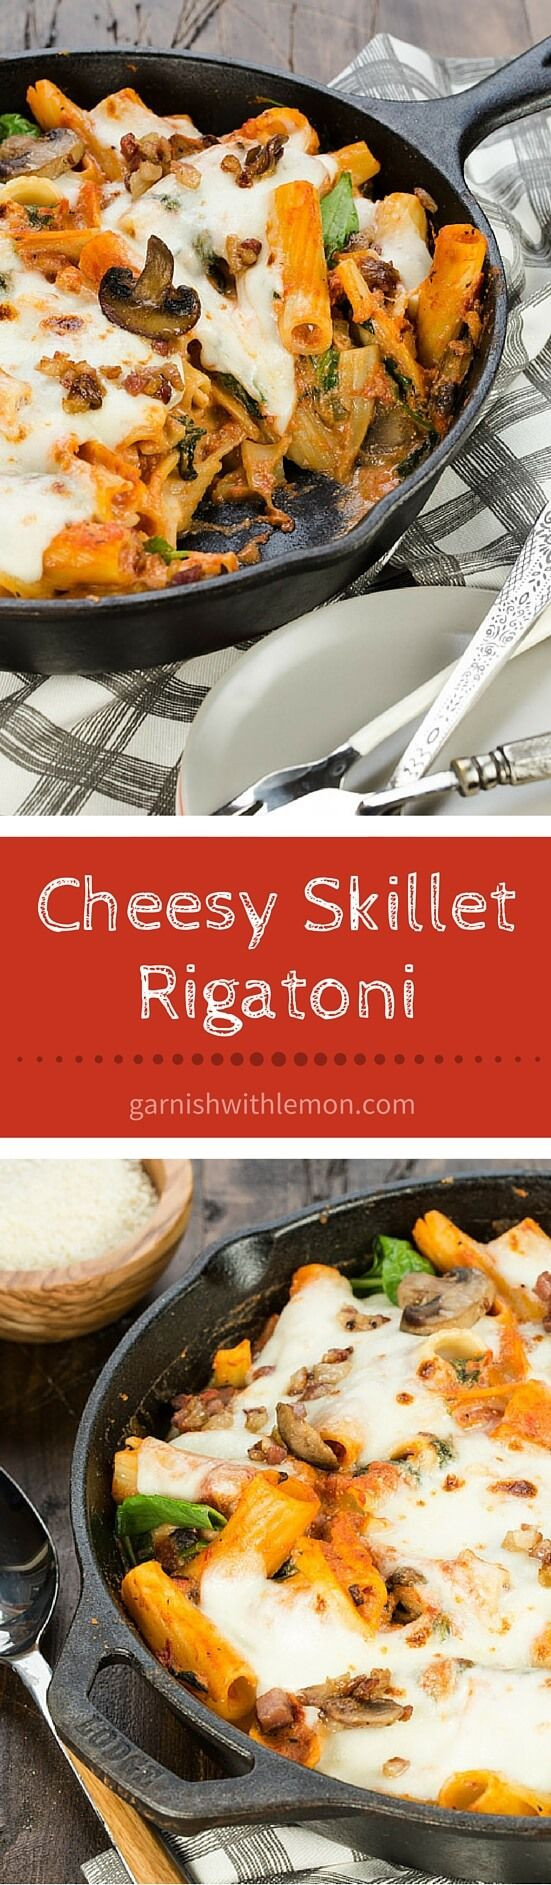 Cheesy Skillet Rigatoni is filled with cheese, pancetta and mushrooms ...